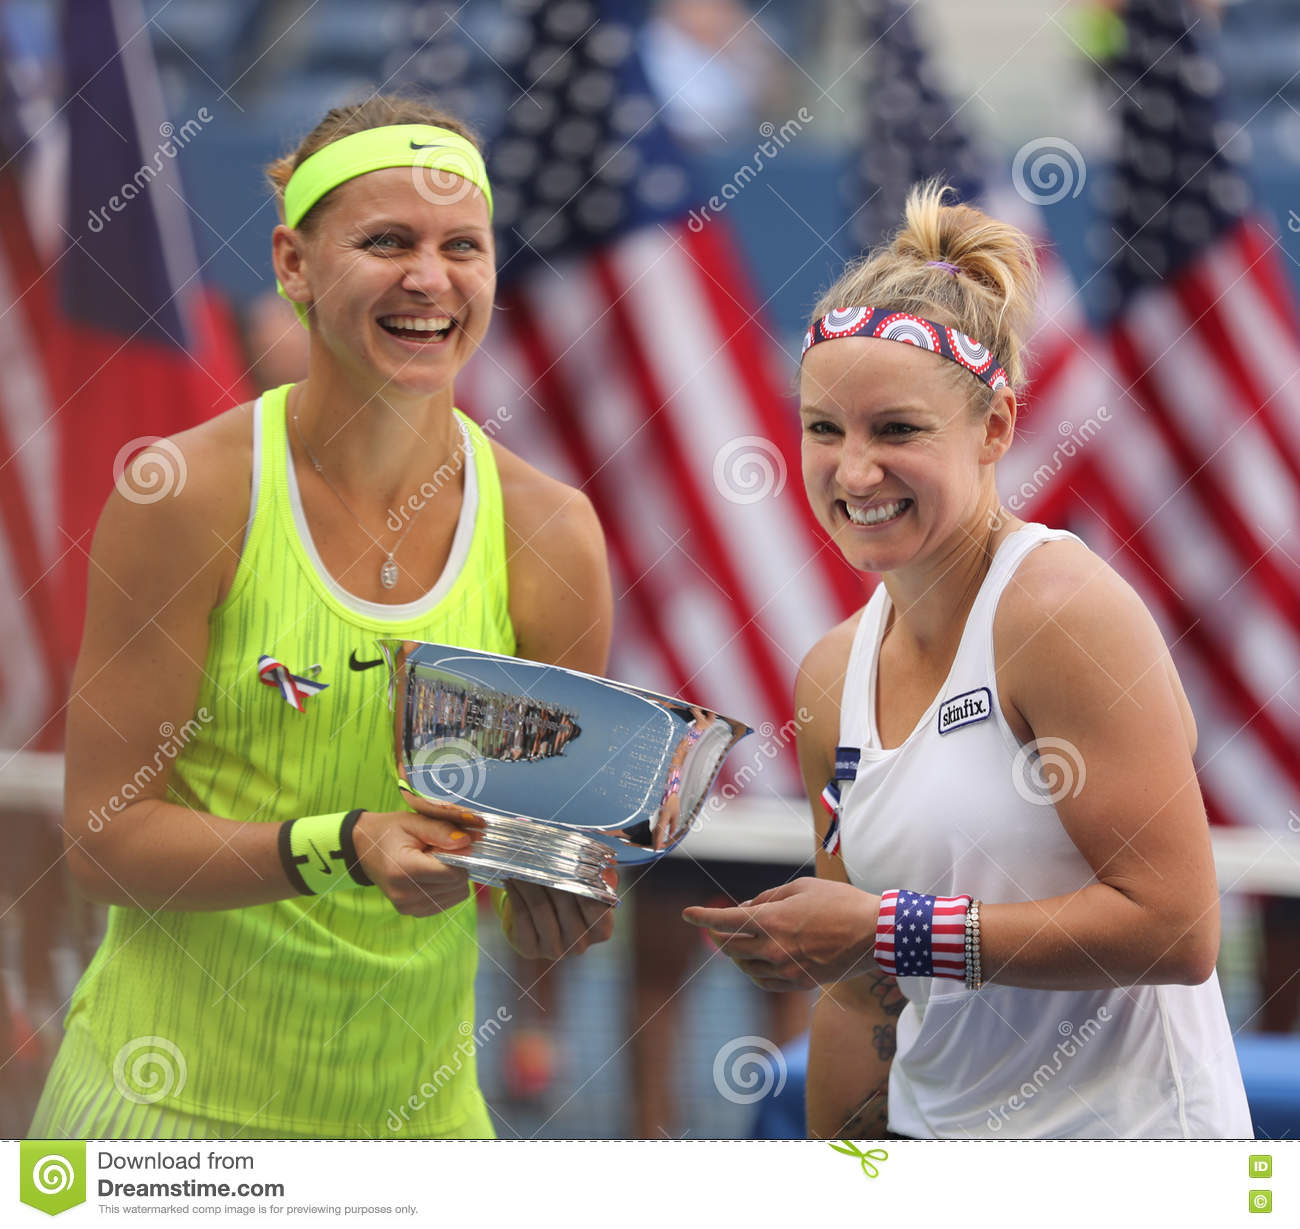 Us open campeoes